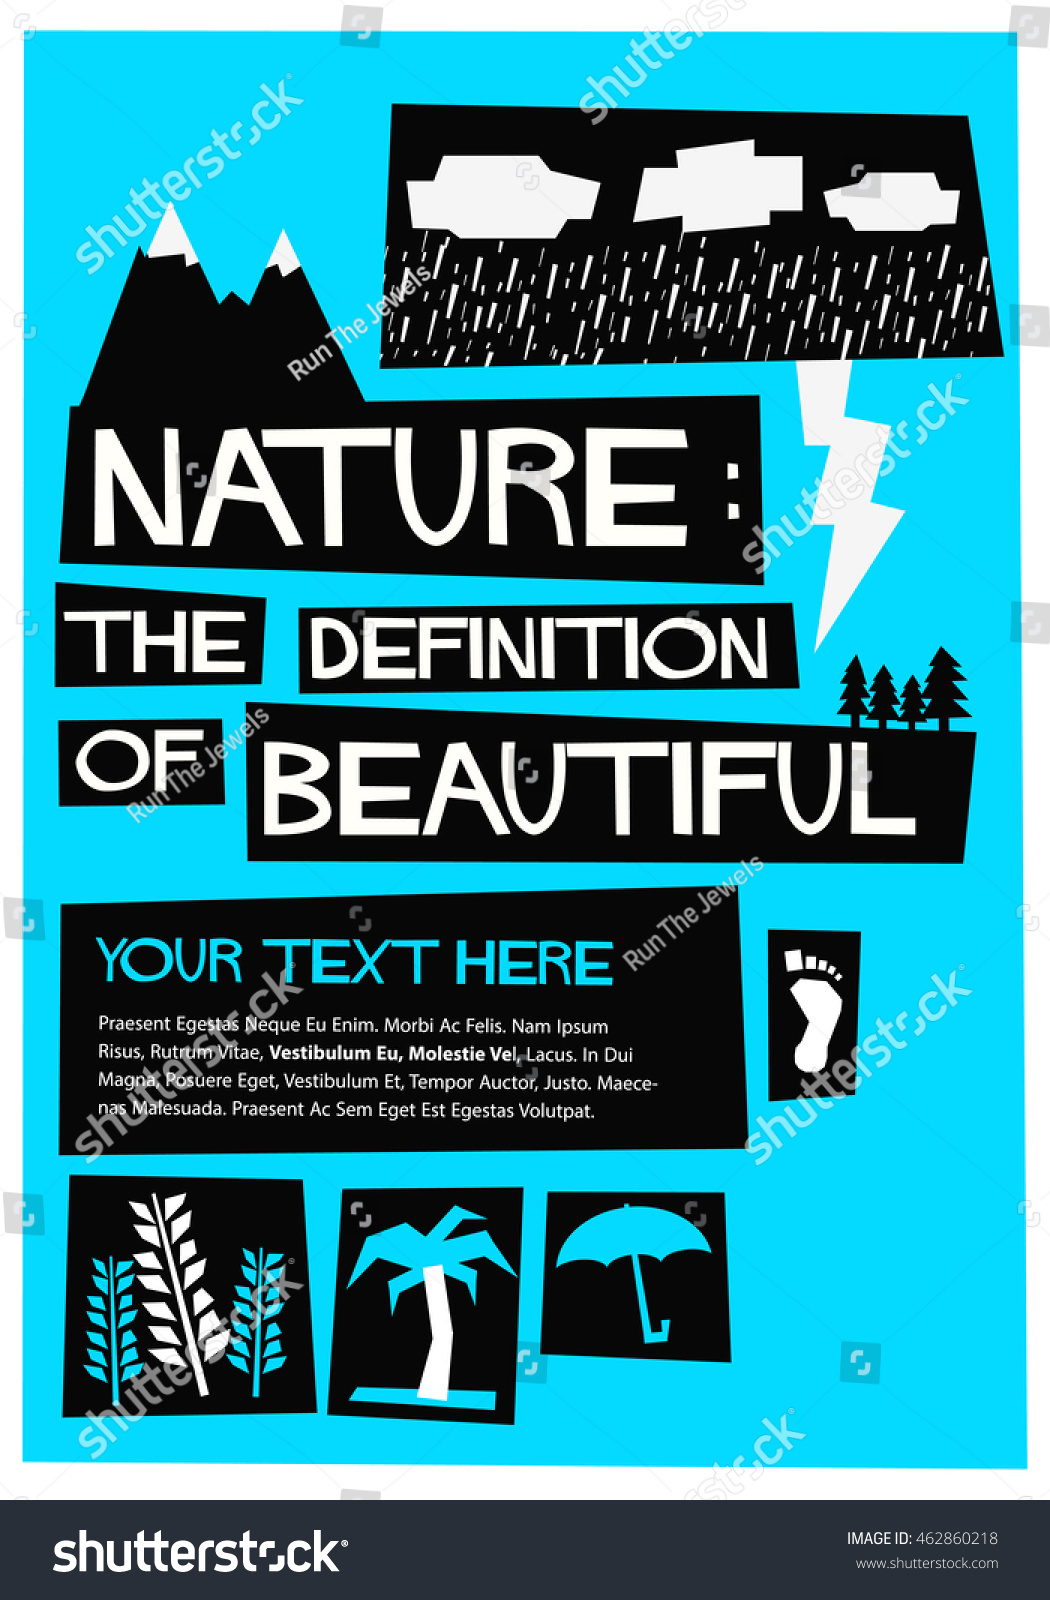 Poster design definition - Nature The Definition Of Beautiful Flat Style Vector Illustration Quote Poster Design